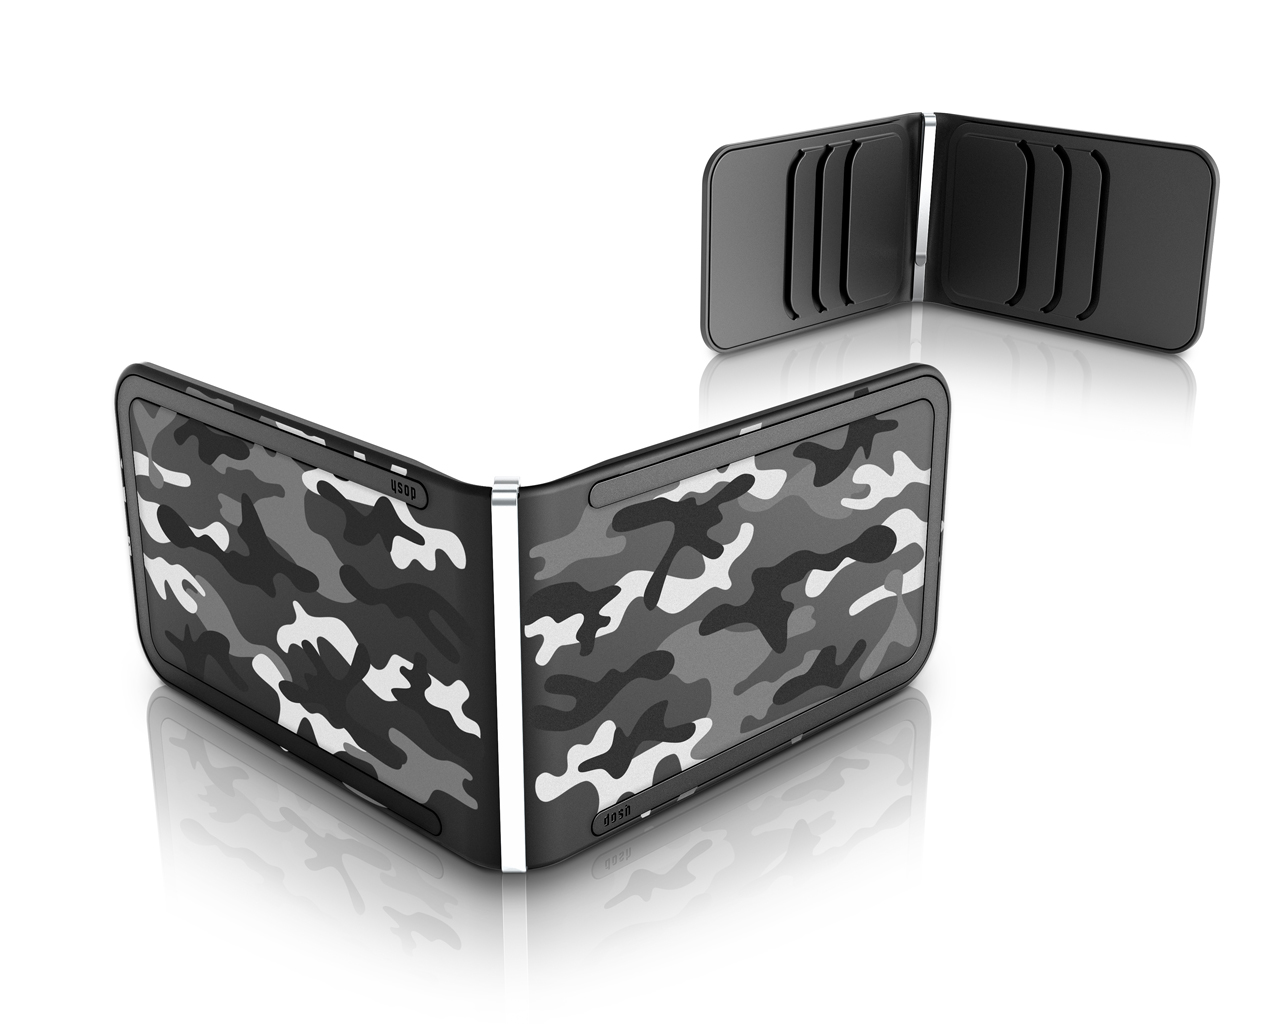 Dosh Luxe Print Camo - Limited Edition